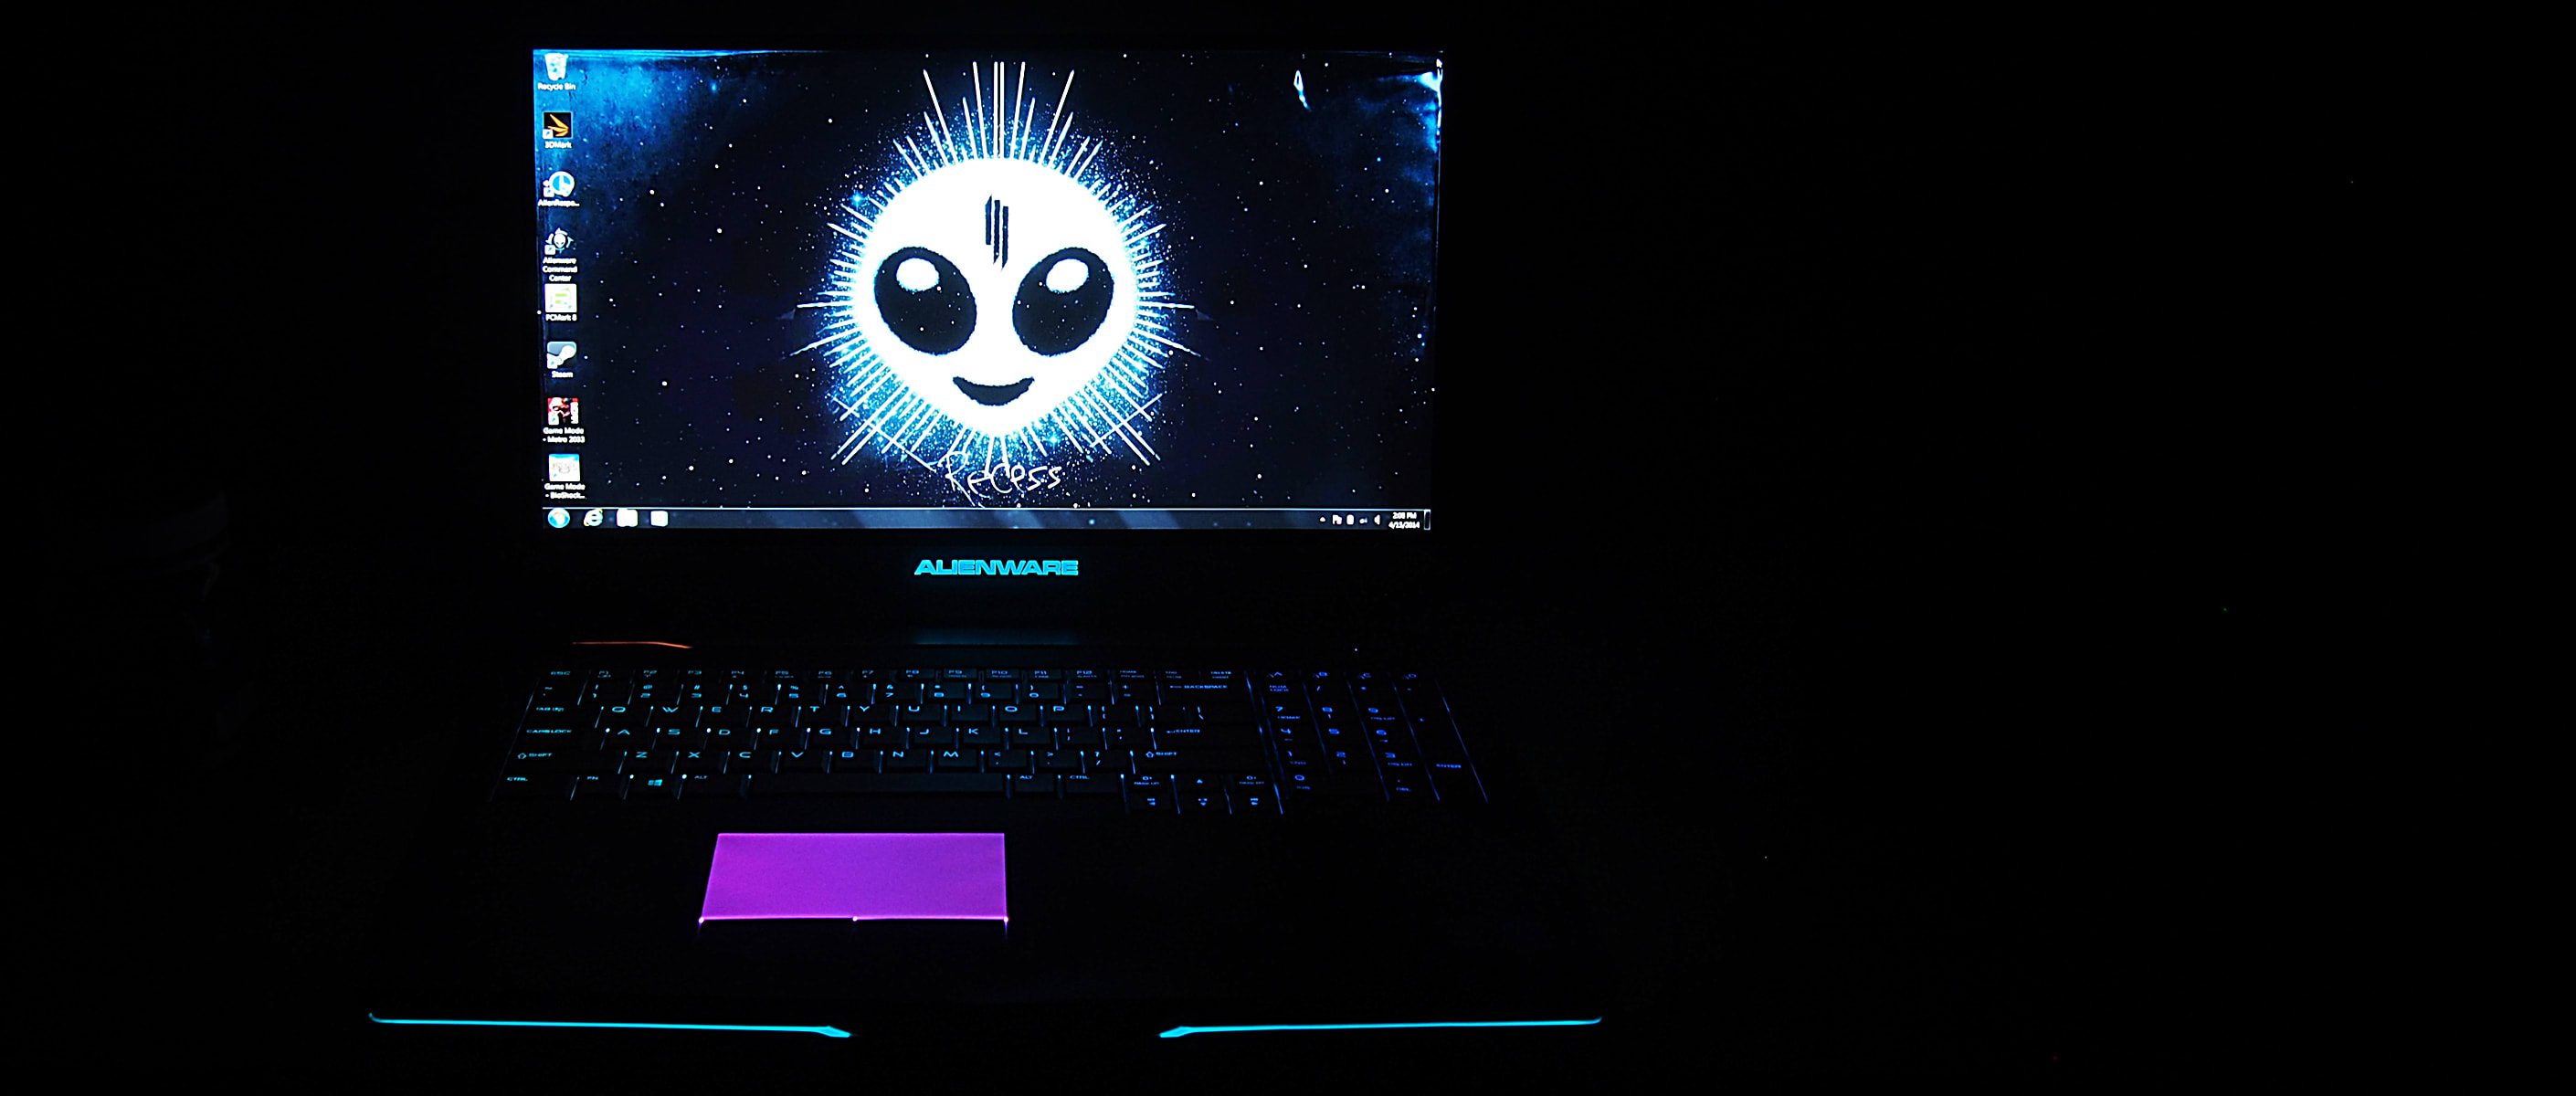 The Alienware 17 Gaming Laptop (Radeon R9 M290X Version)